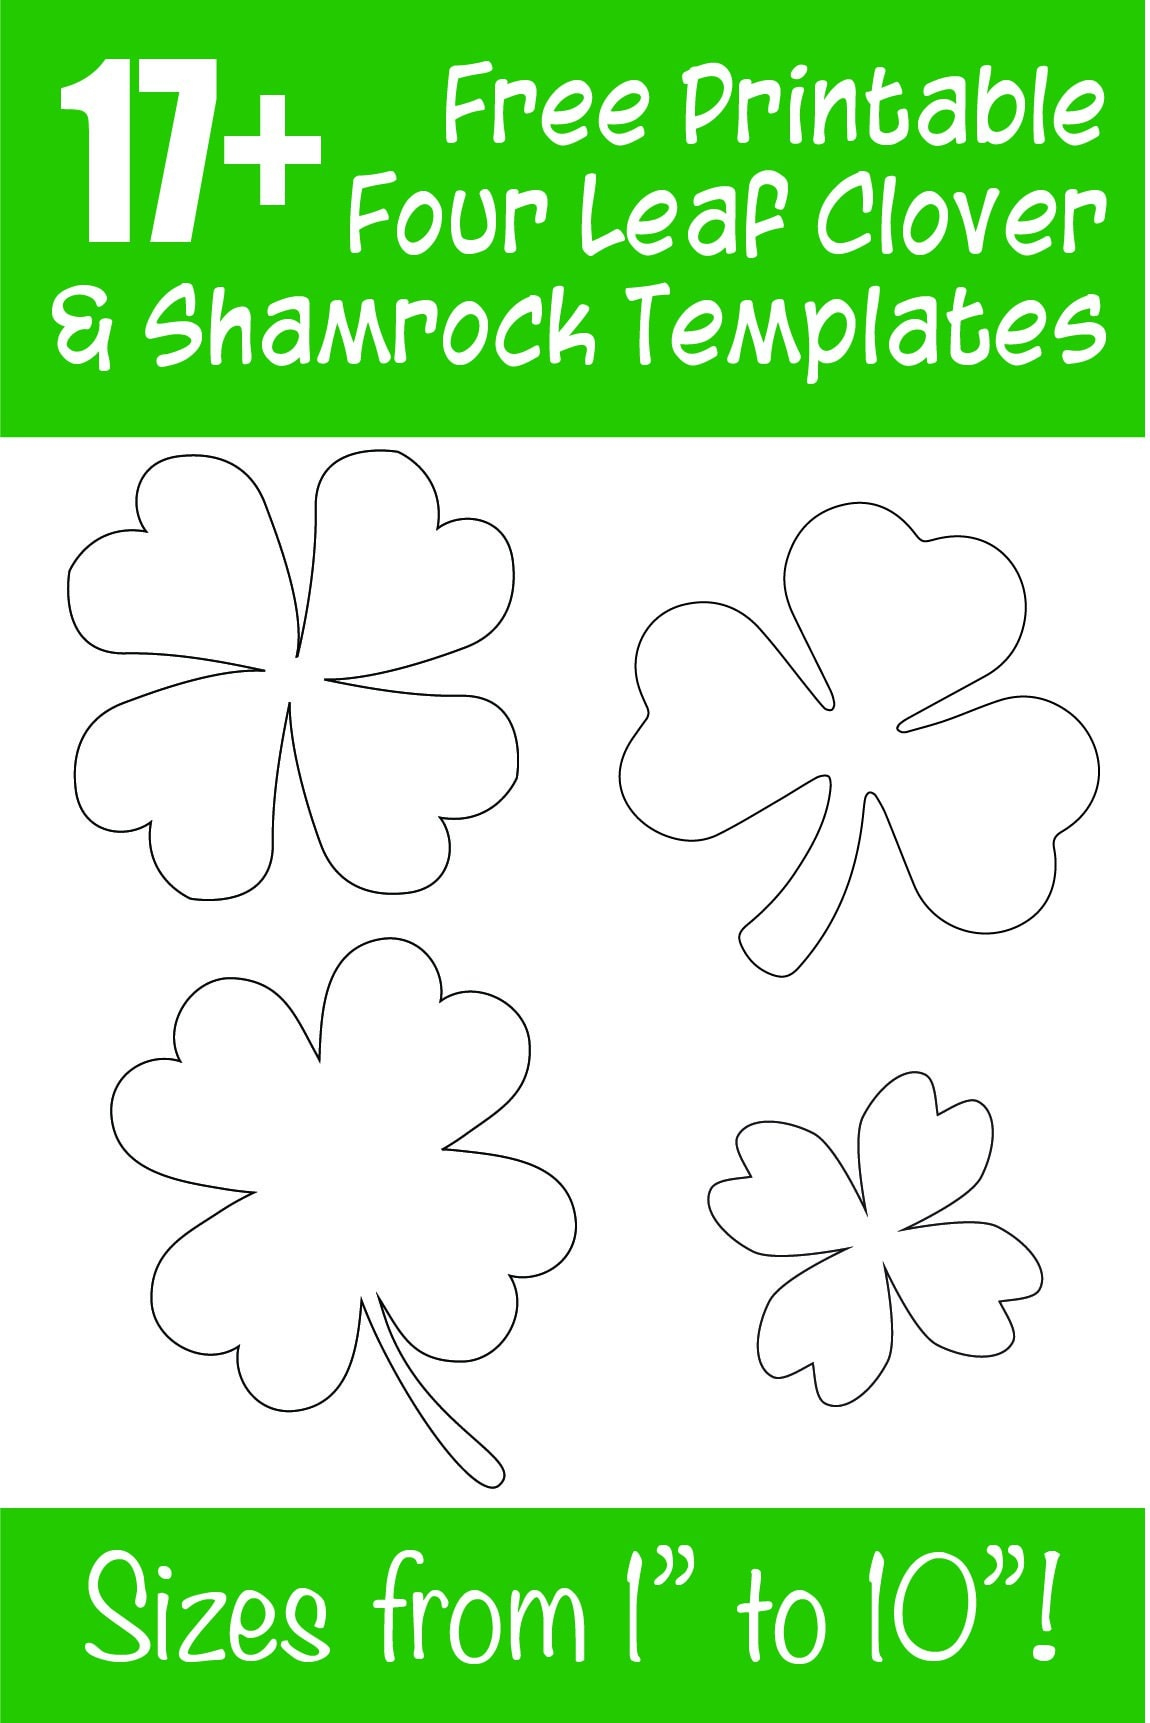 17+ Free Printable Four Leaf Clover & Shamrock Templates - The - Free Printable Shamrocks